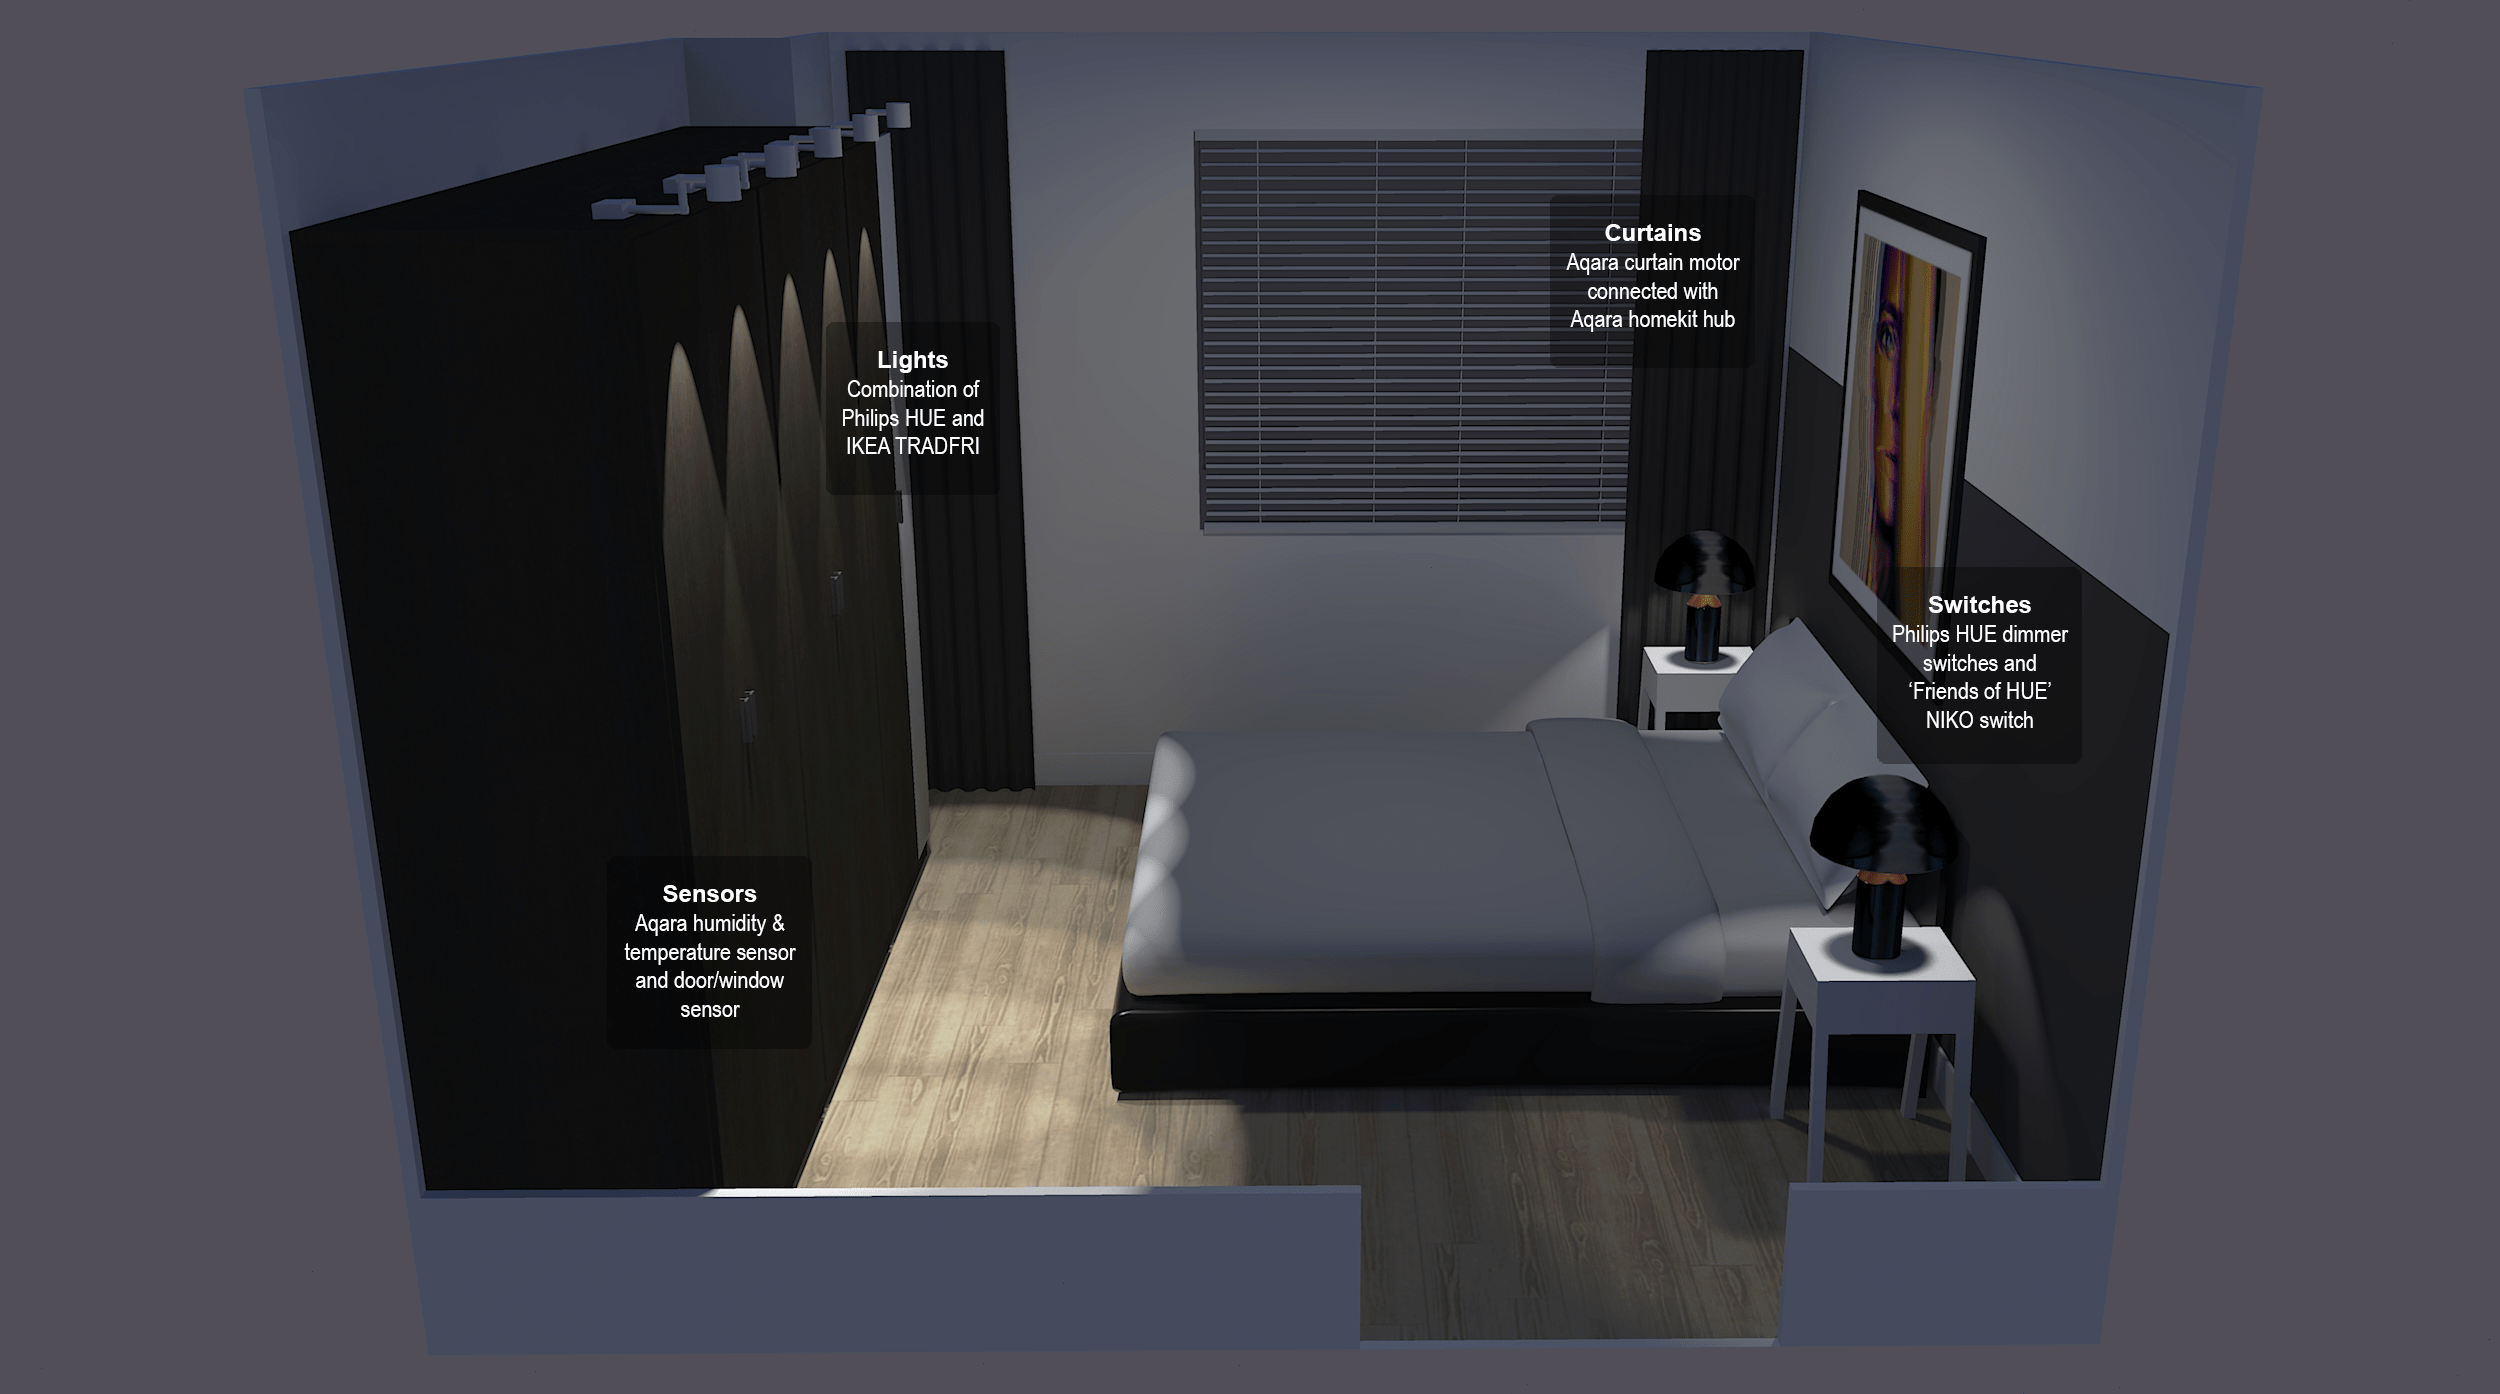 Ikea Tradfri Creating An Apple Homekit Controlled Bedroom Combining Philips